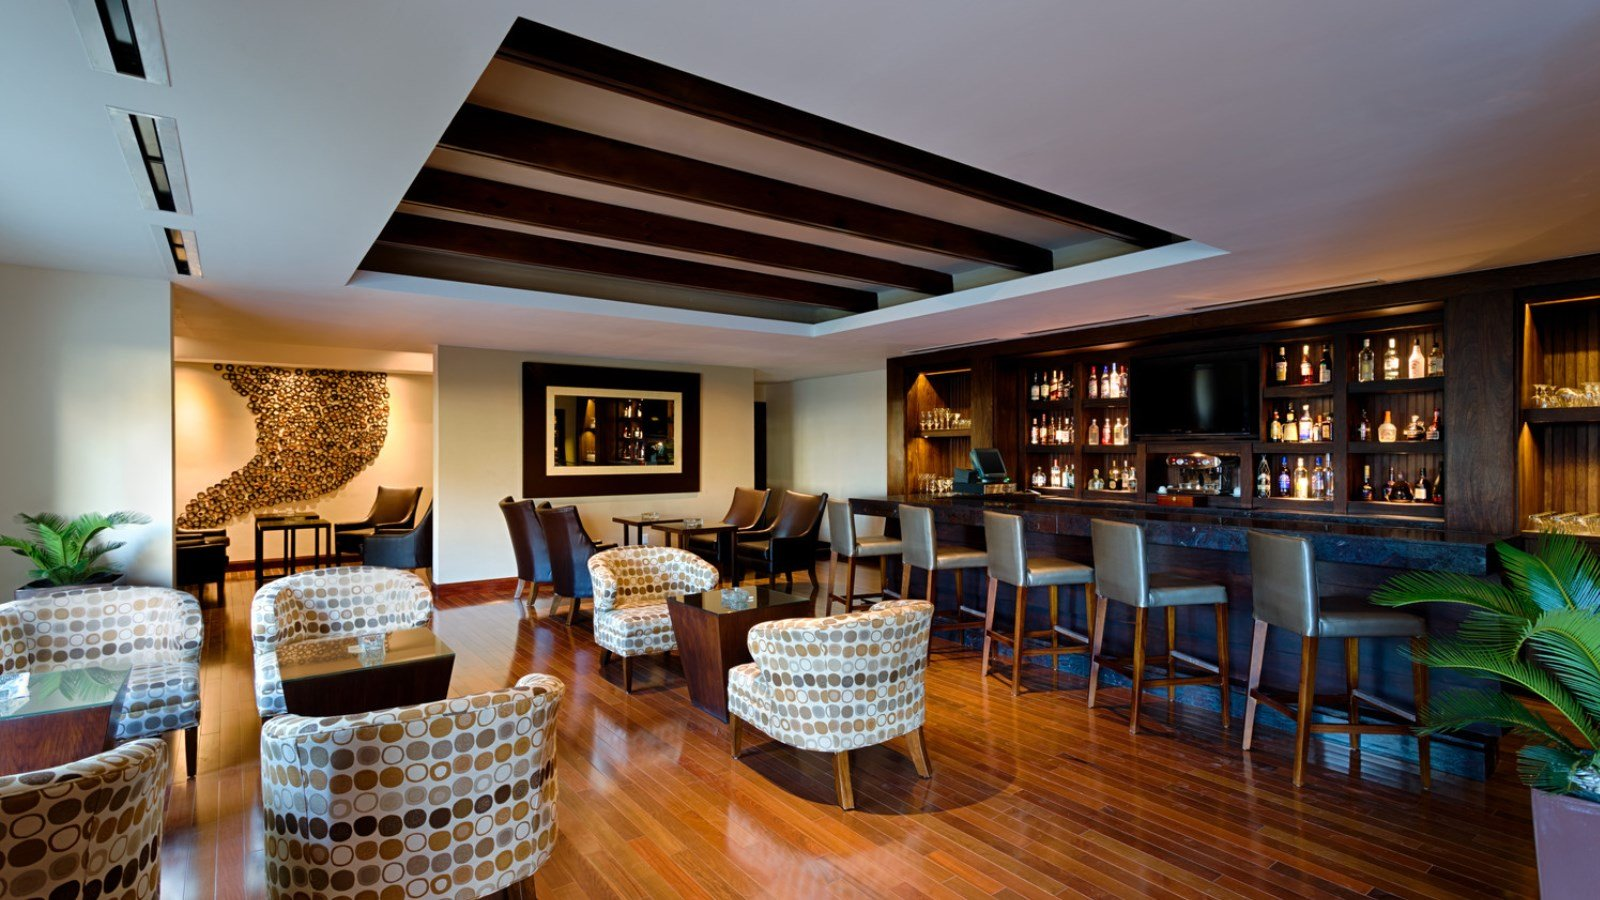 rsz_cigar_lounge_sitting_area-1.jpg